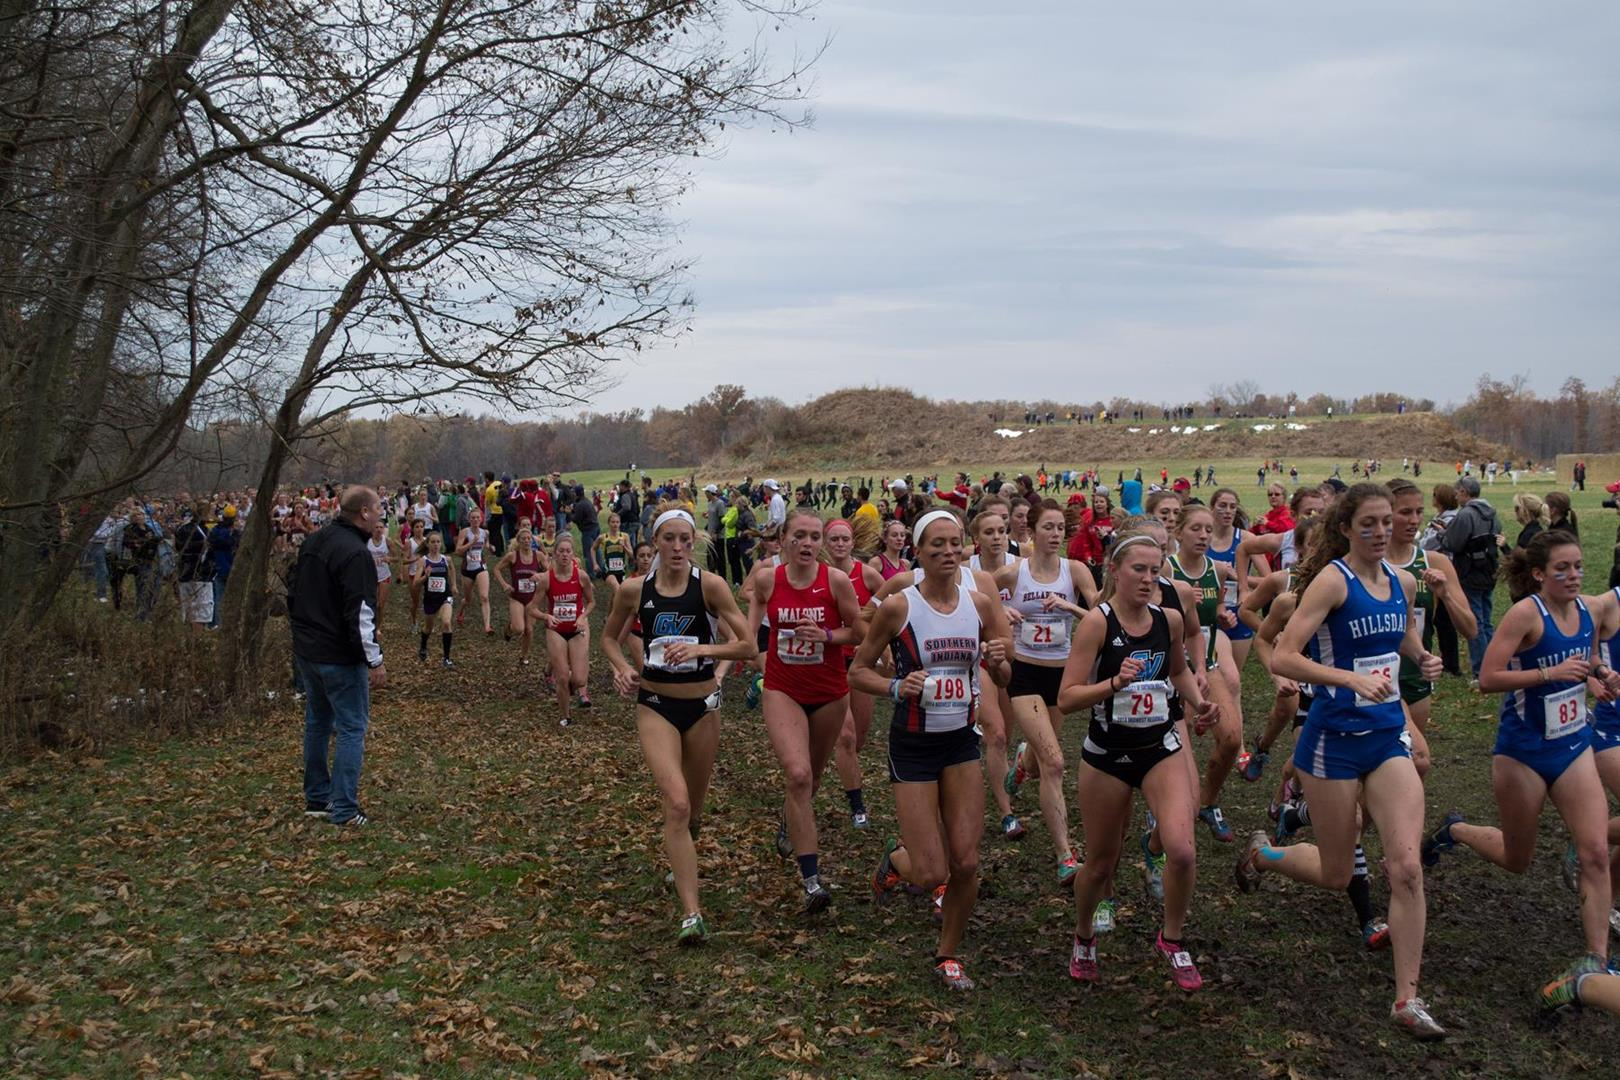 Indiana – Hoosiers, Hoops and Great Sports Traditions